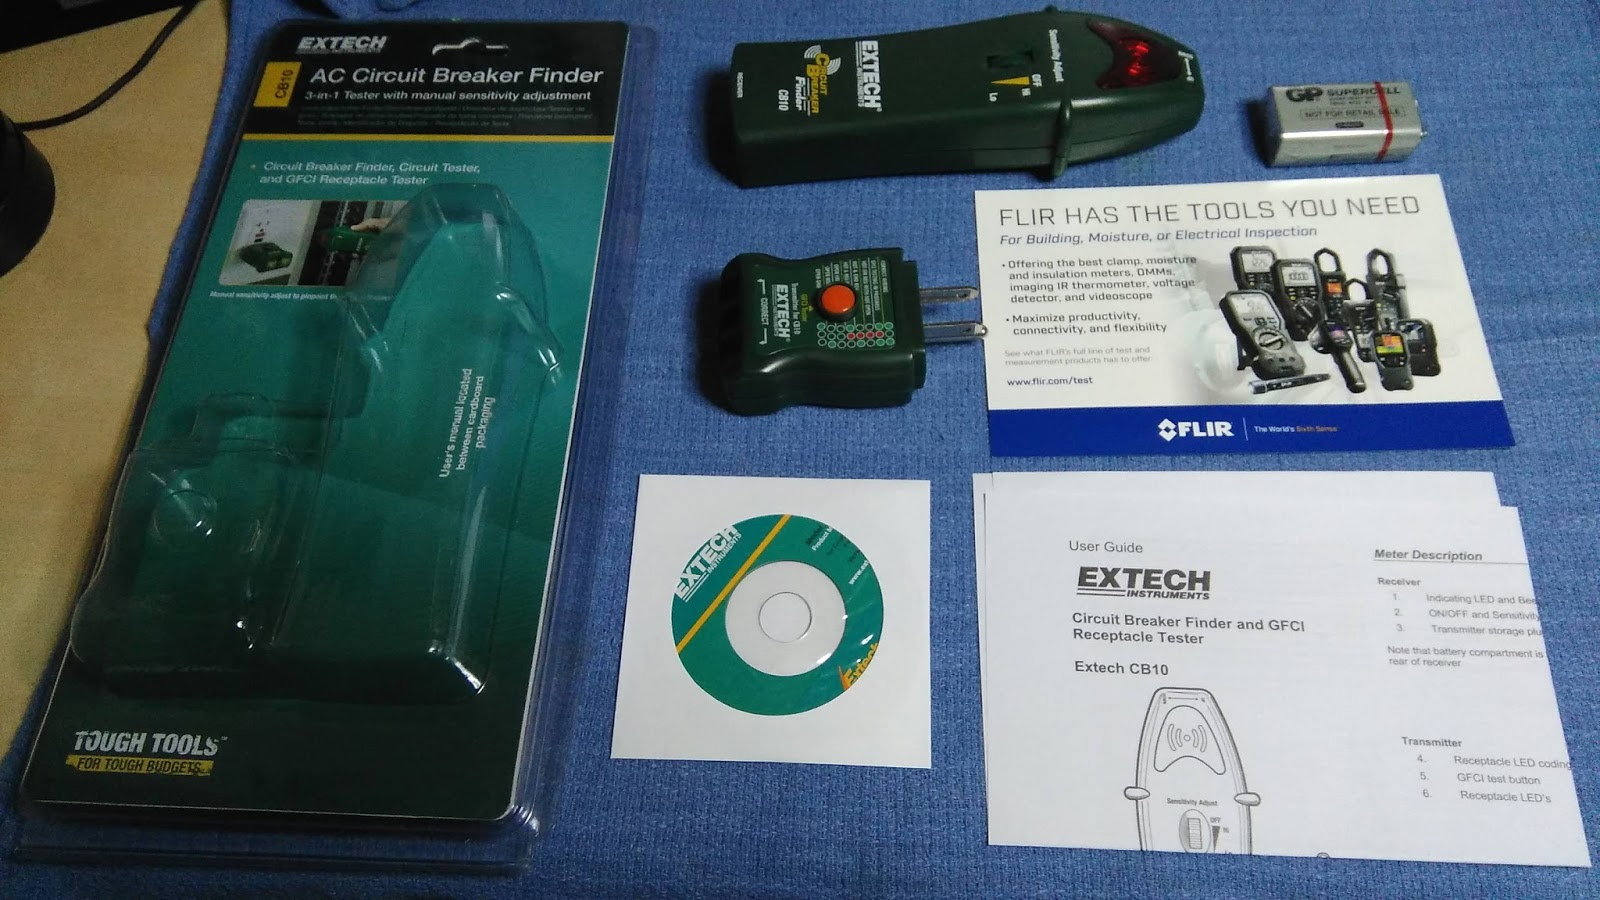 Tech Stuff Extech Cb10 Circuit Breaker Finder Reviews Online Shopping On Heres Everything You Get In The Package Its Nice That They Include 9v Battery And I Did Check It Came At 10 Volts Which Was